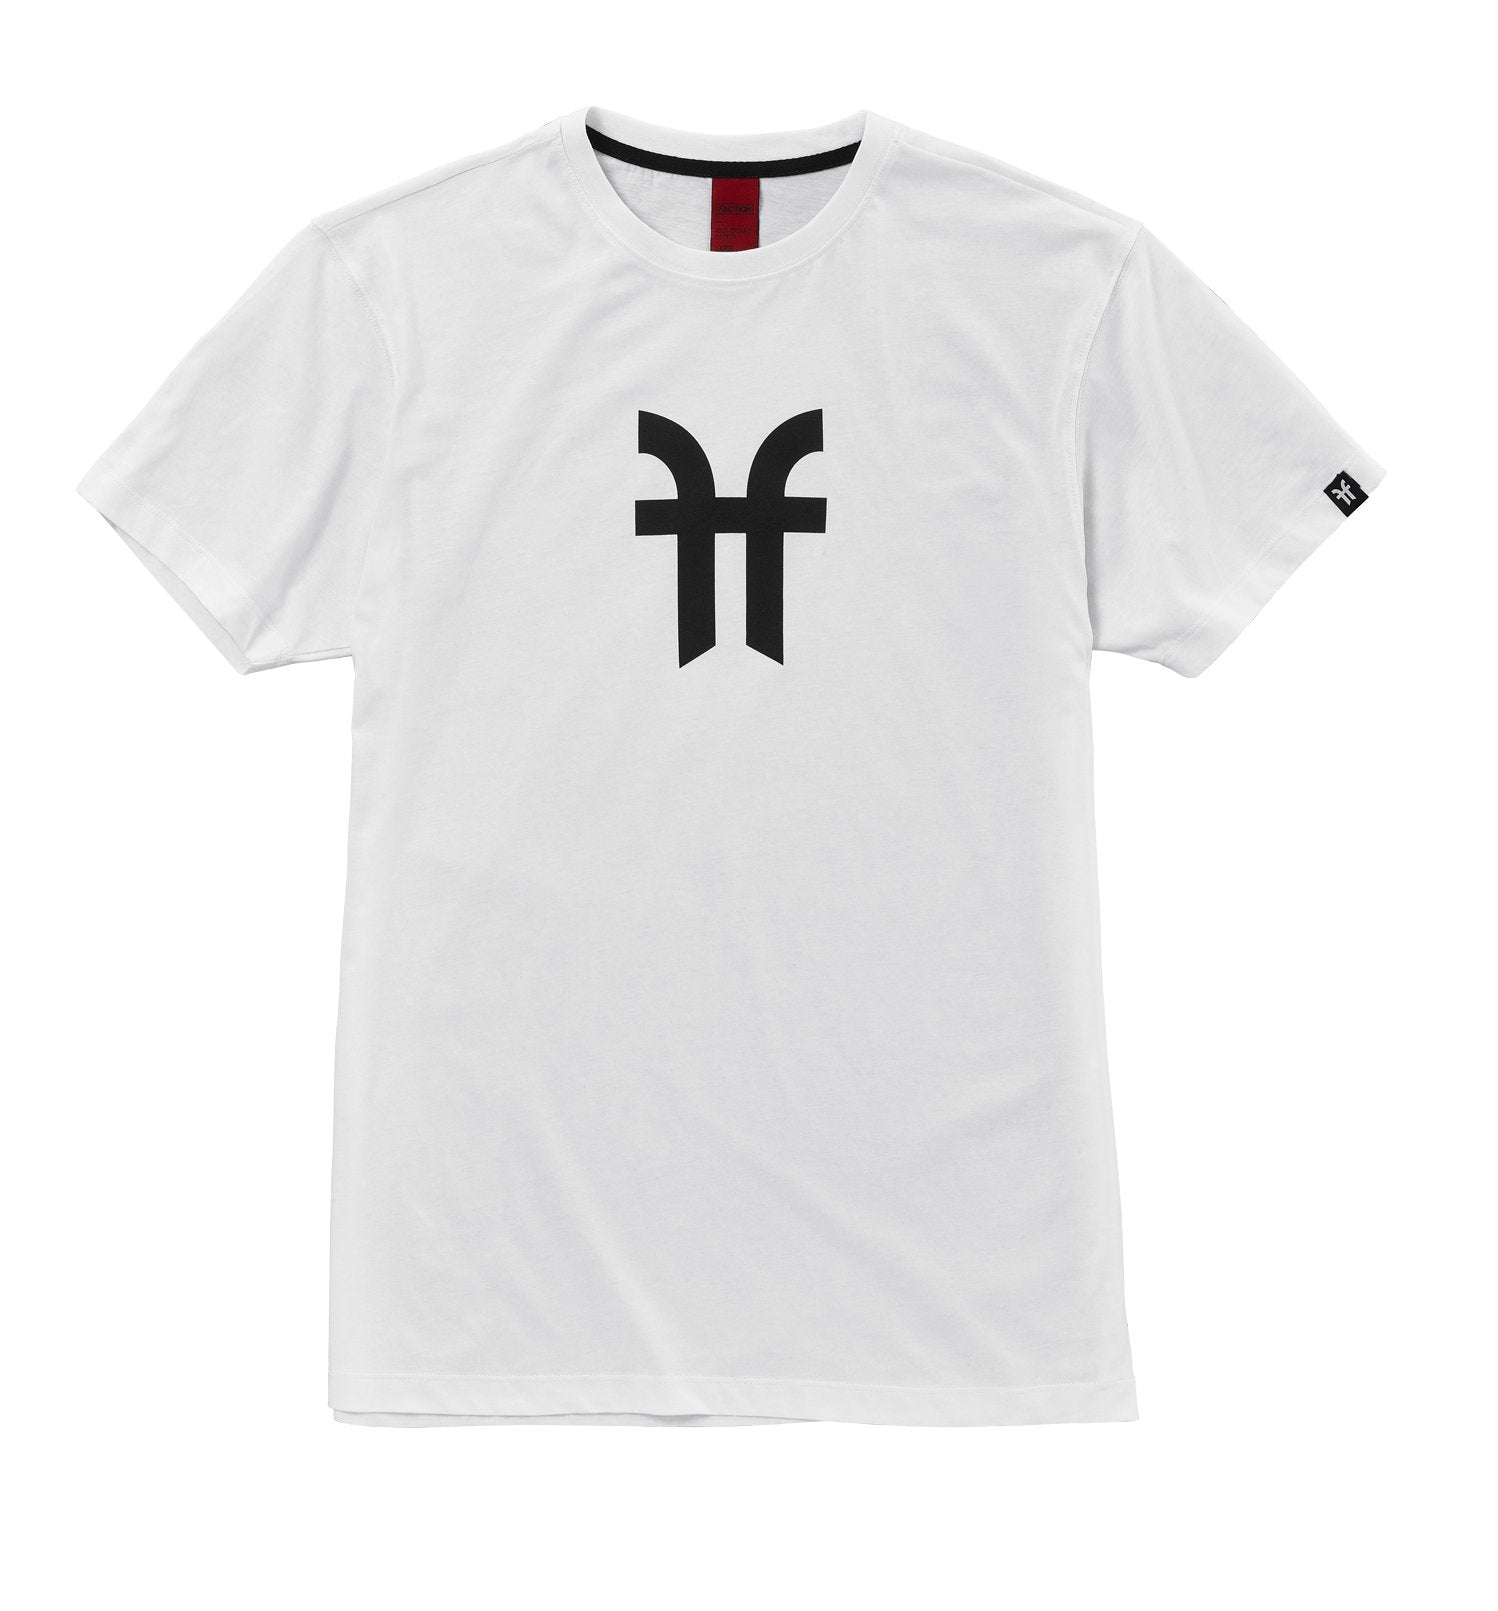 MEN'S ICON T-SHIRT